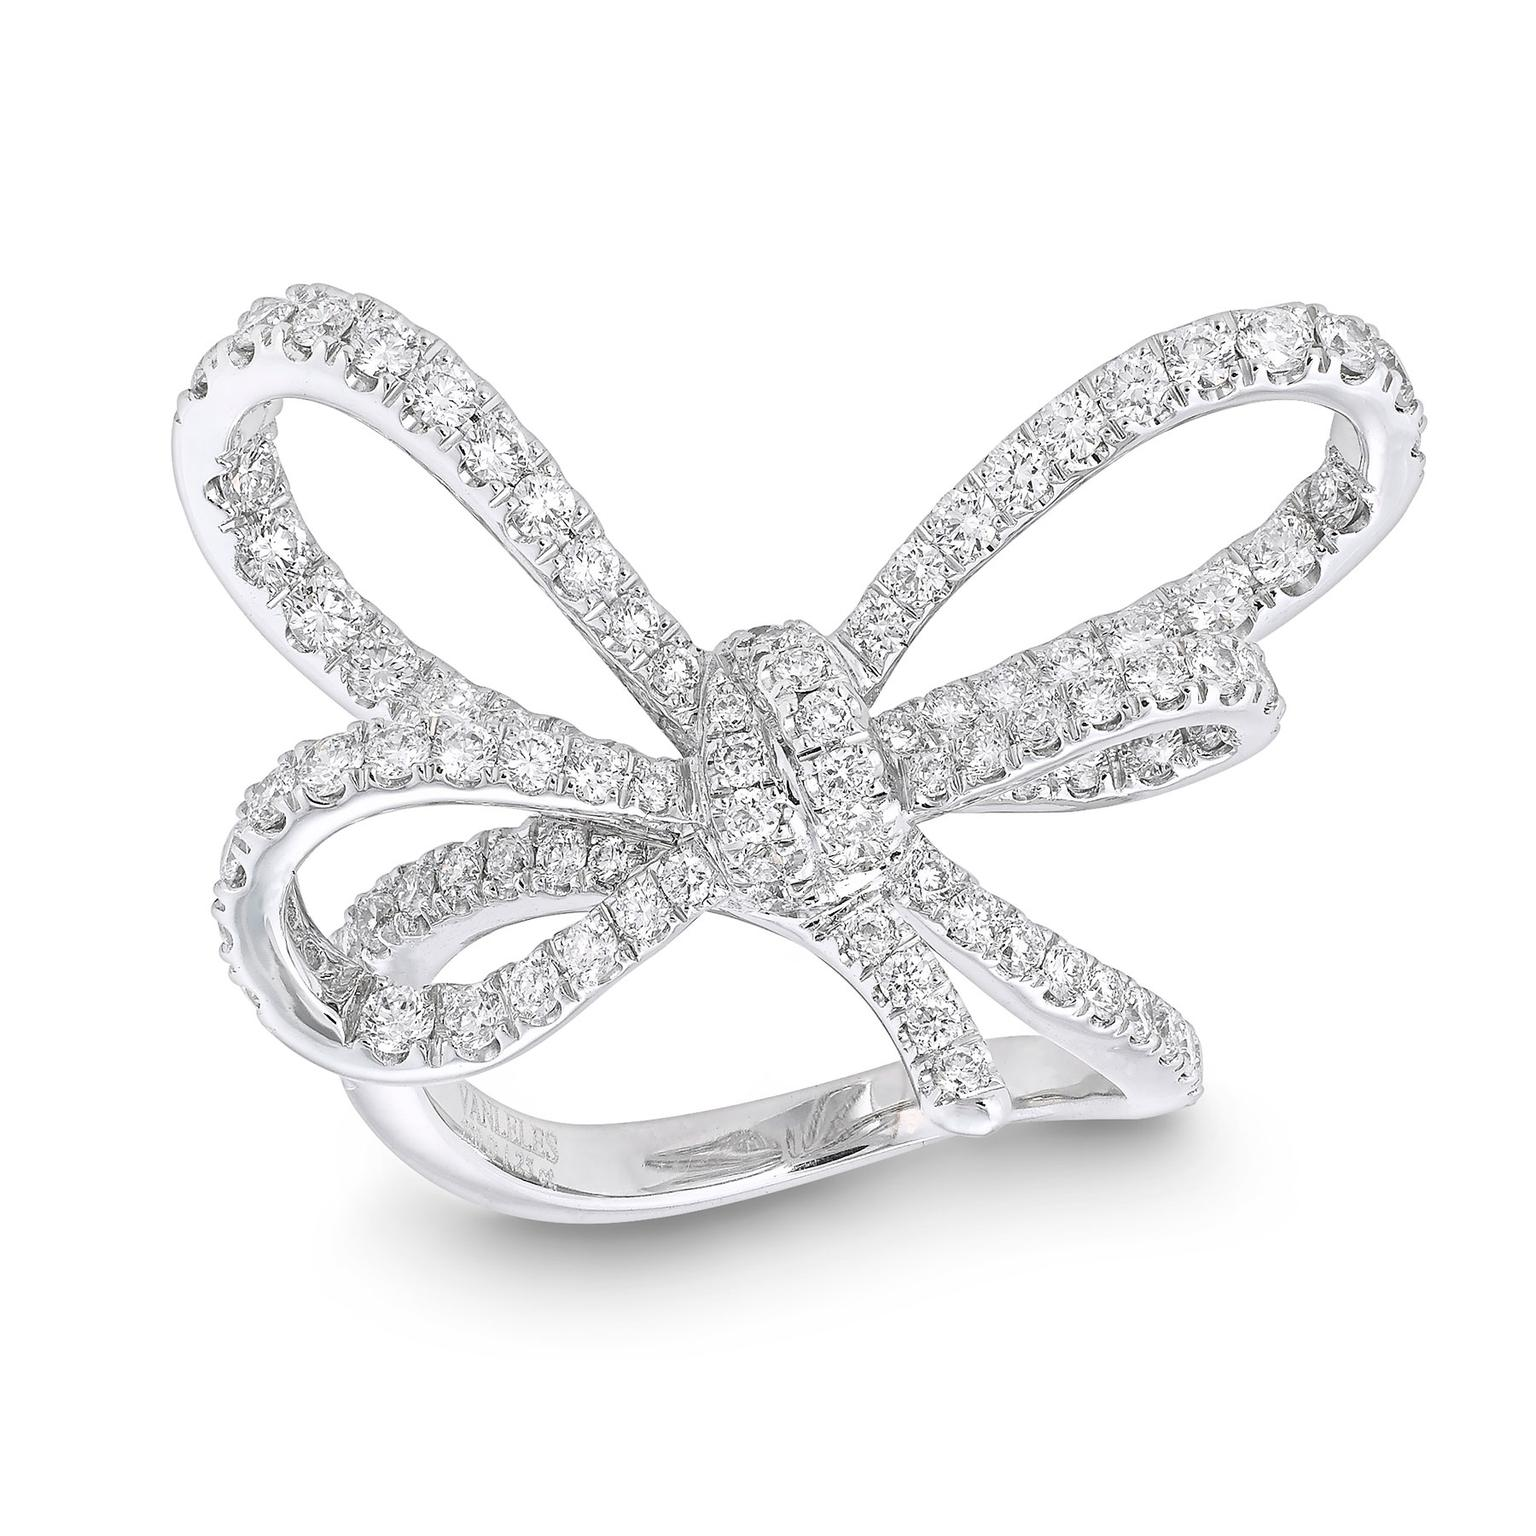 VANLELES Bow white gold and diamond ring